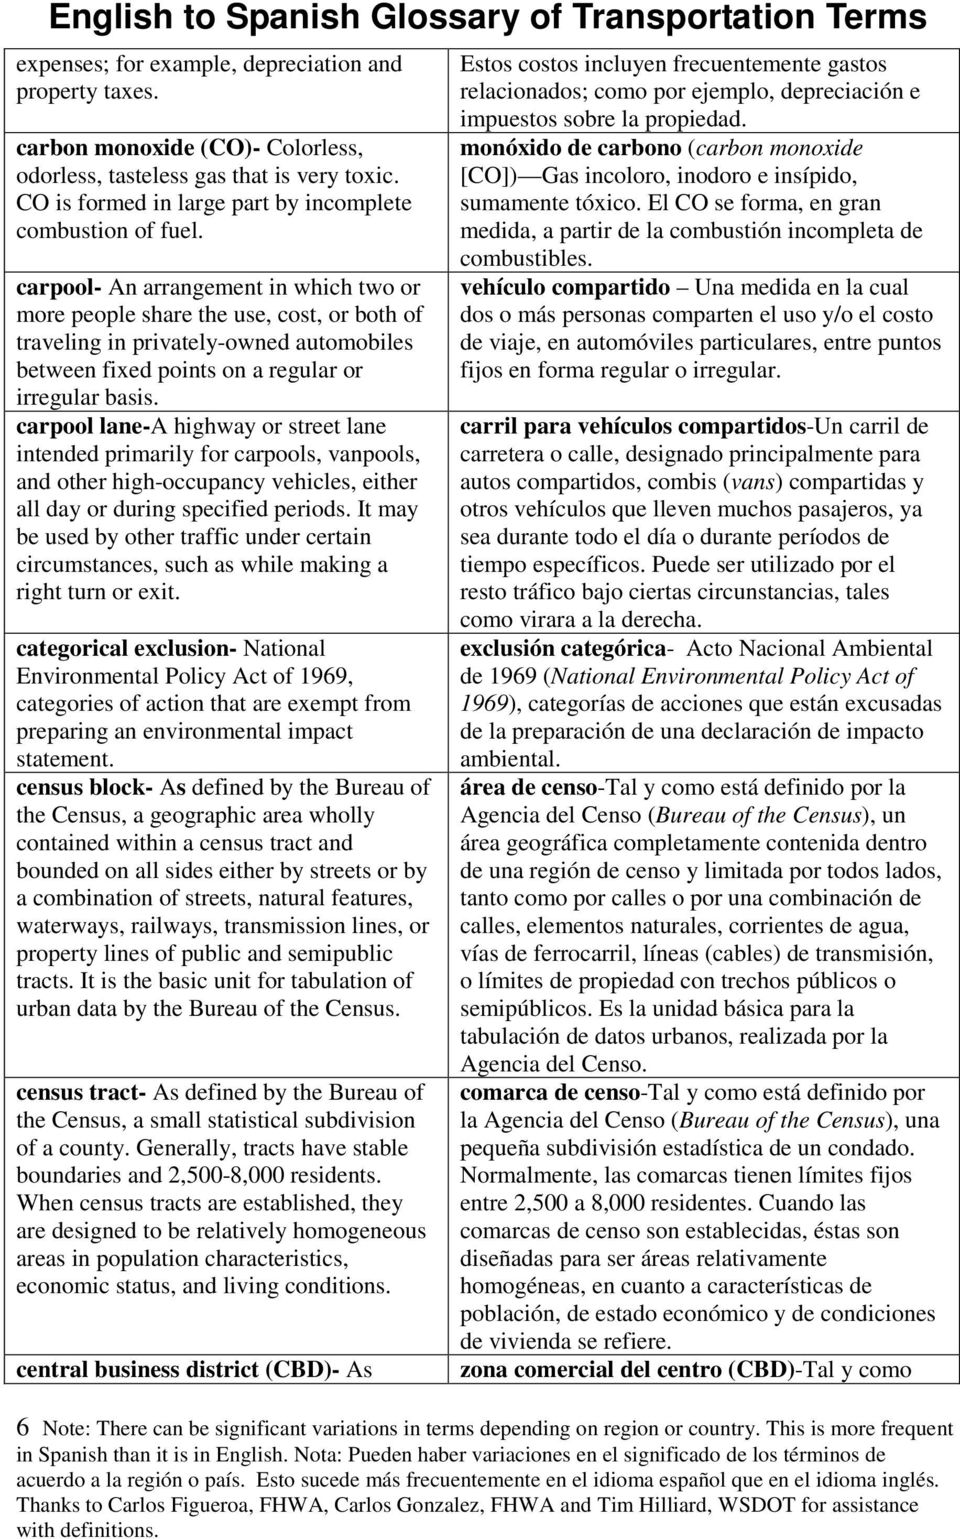 carpool lane-a highway or street lane intended primarily for carpools, vanpools, and other high-occupancy vehicles, either all day or during specified periods.